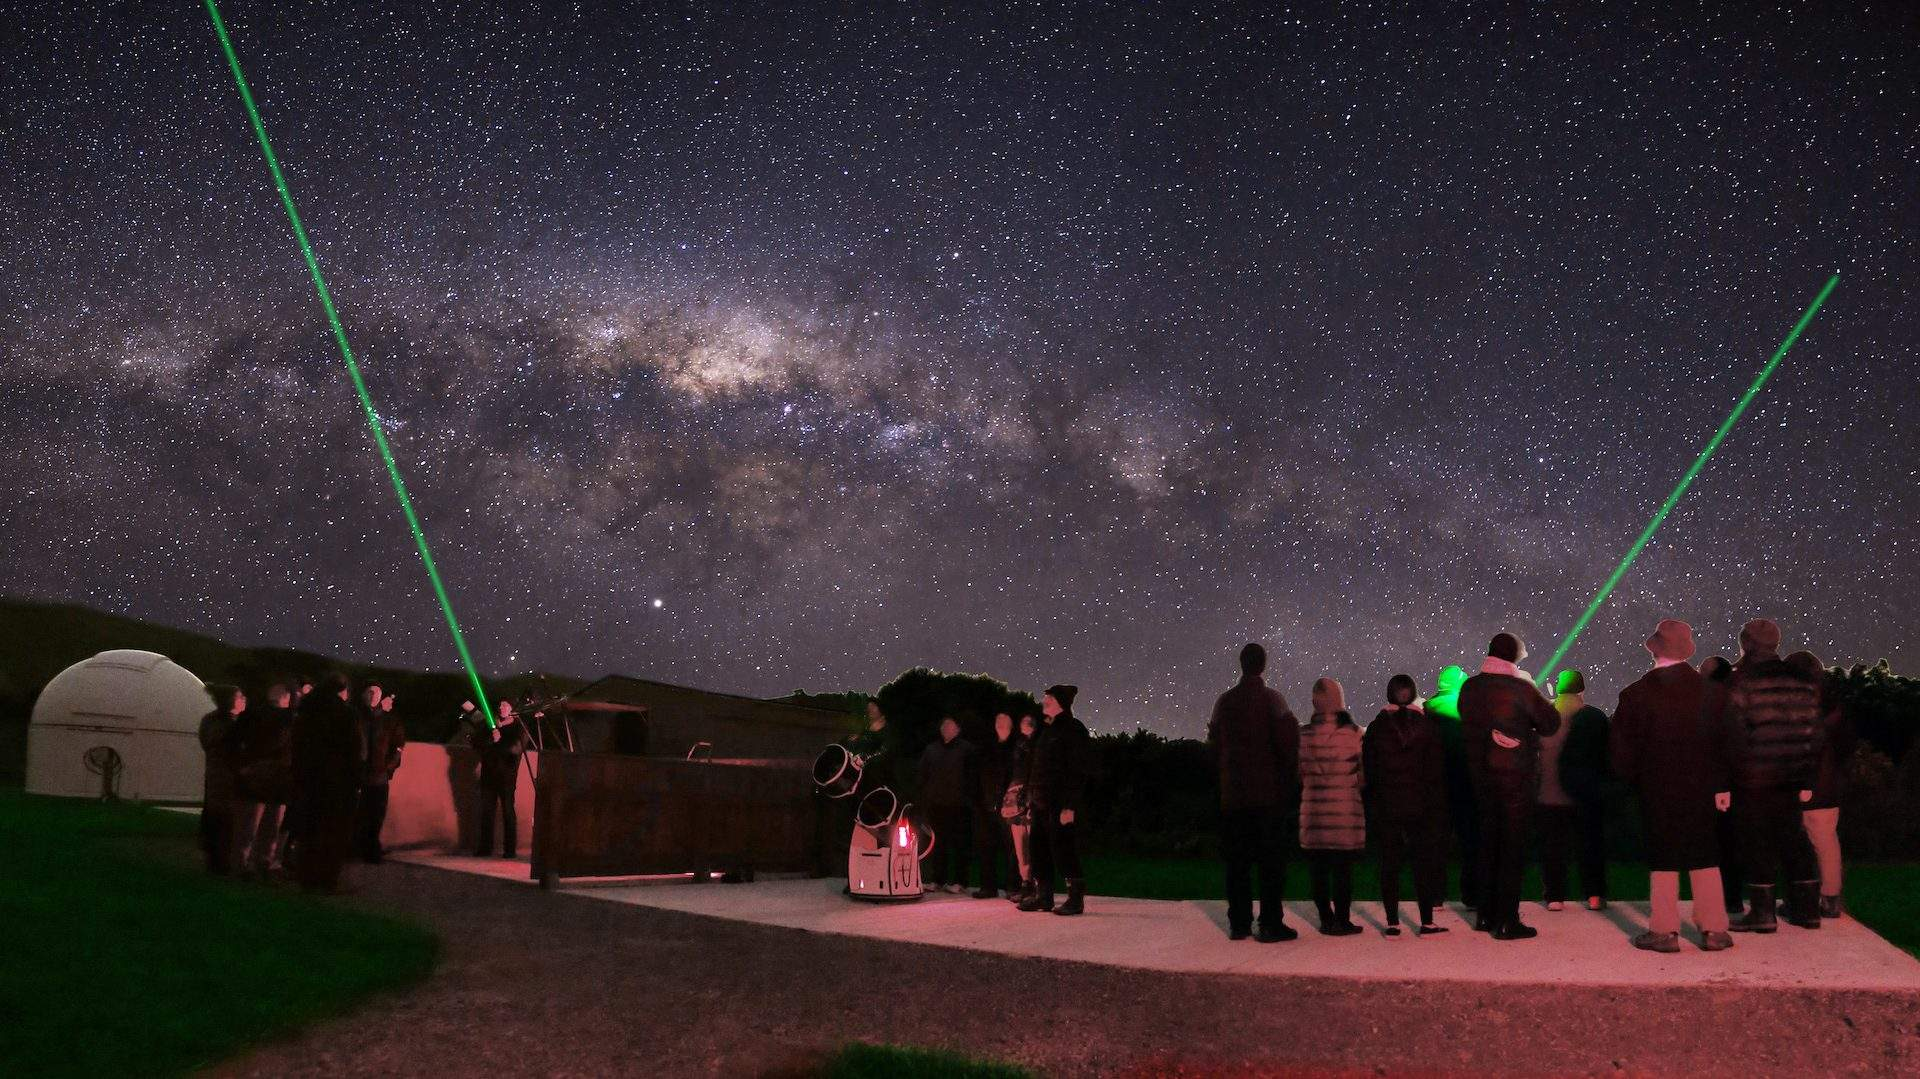 A New Dark Sky Experience Has Opened in Martinborough